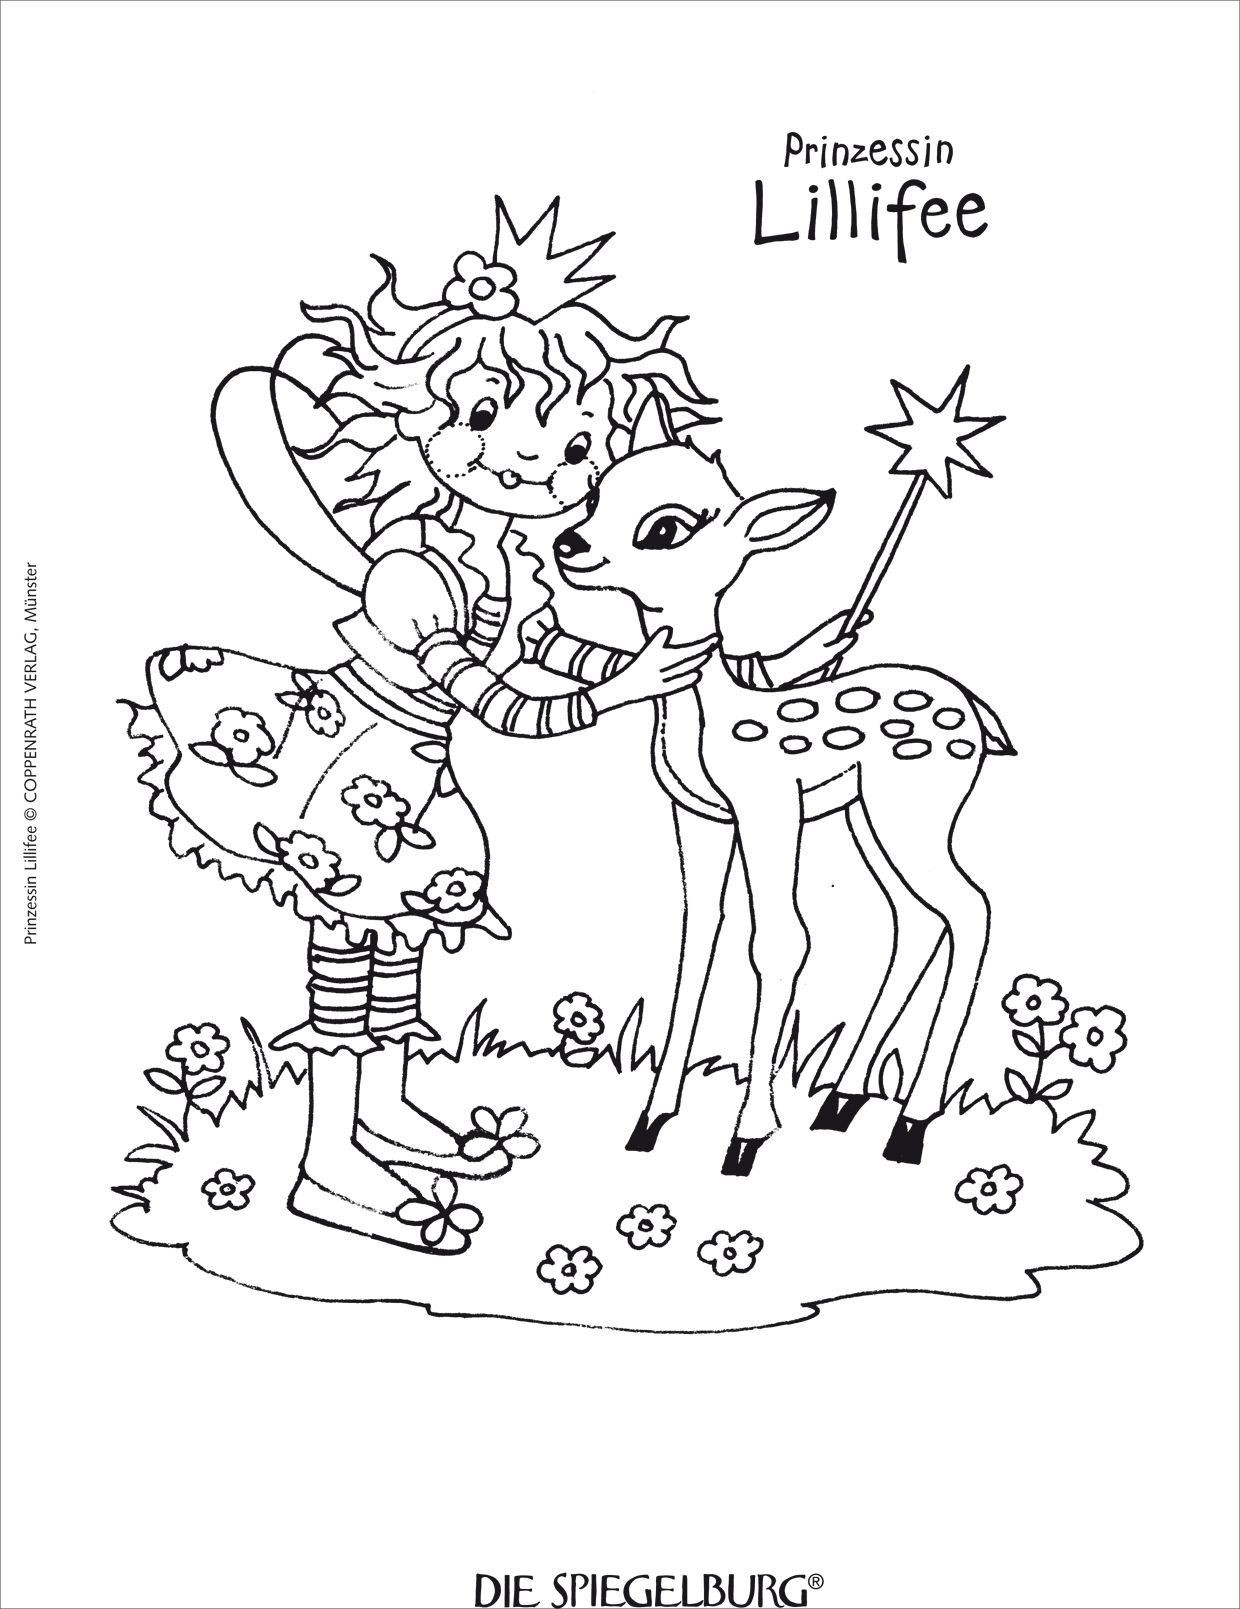 Princess lillifee coloring pages -